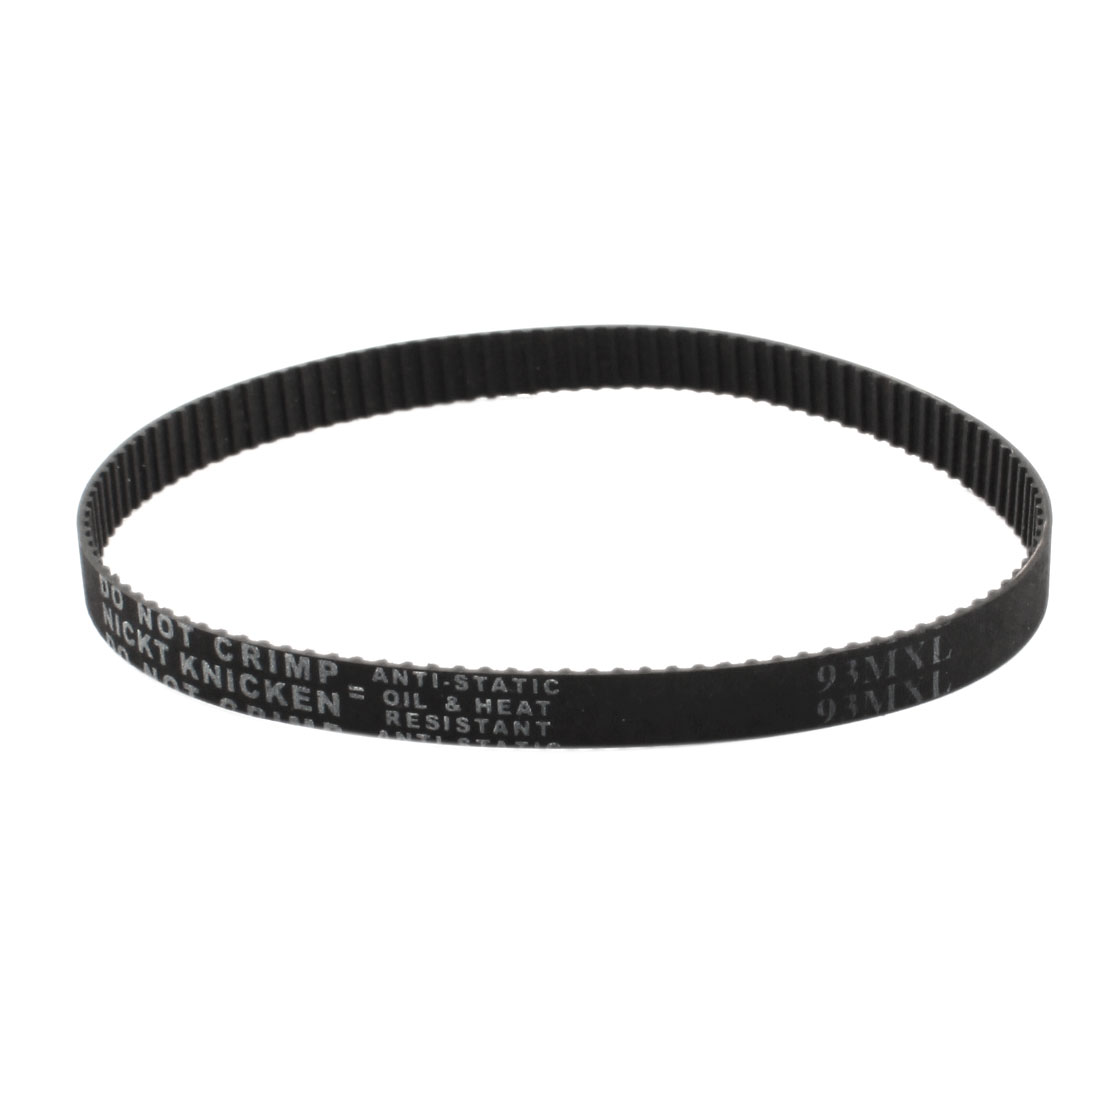 "93MXL025 116 Teeth 2.032mm Pitch 1/4"" Width Single Side Black Industrial Stepper Motor Groove Synchronous Timing Belt 9.3"" Girth"